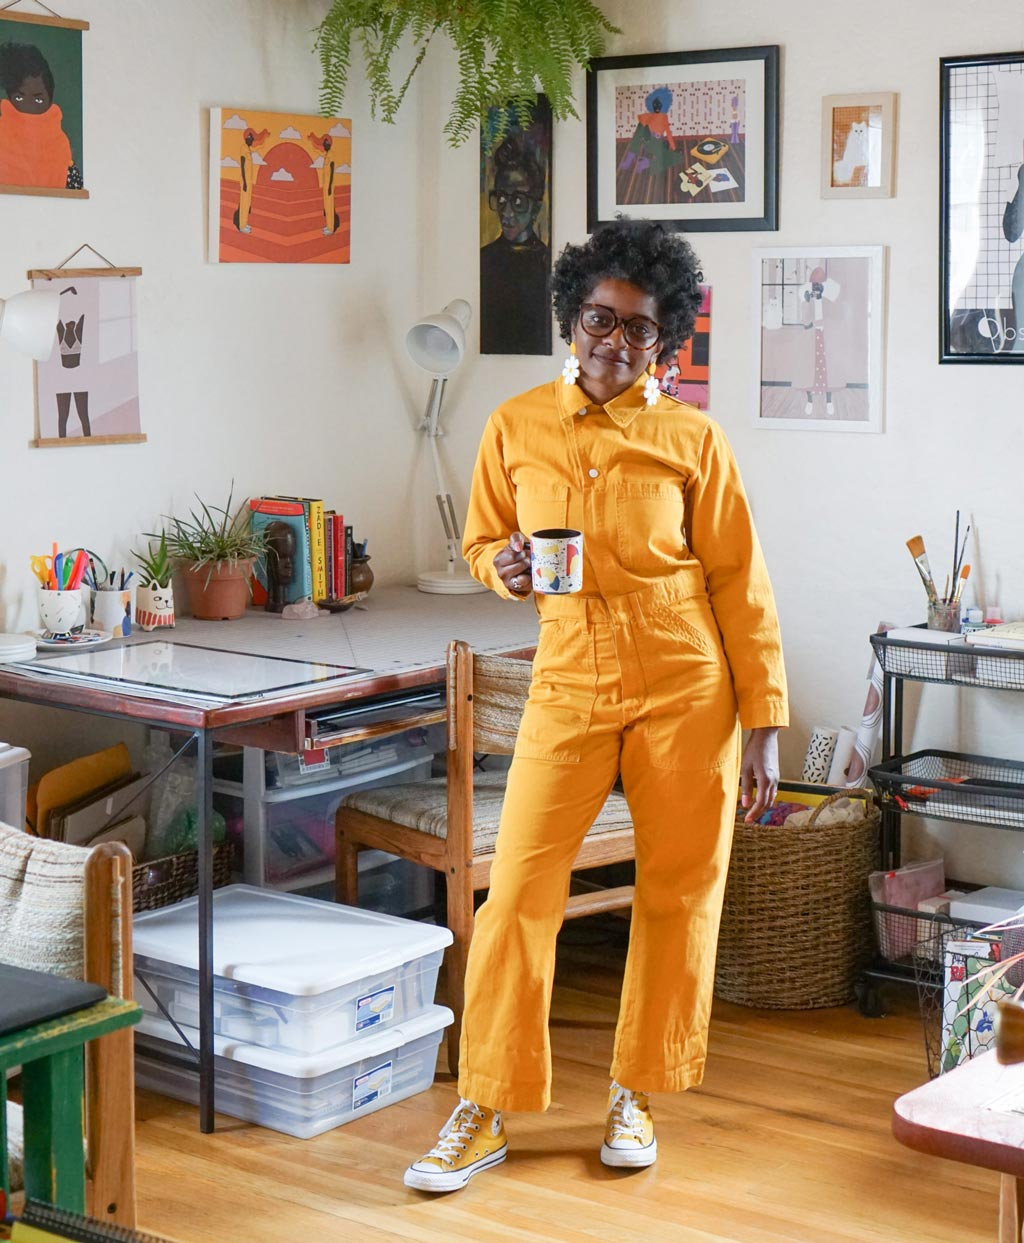 Janell Langford, standing in her art studio in a bold yellow jumpsuit